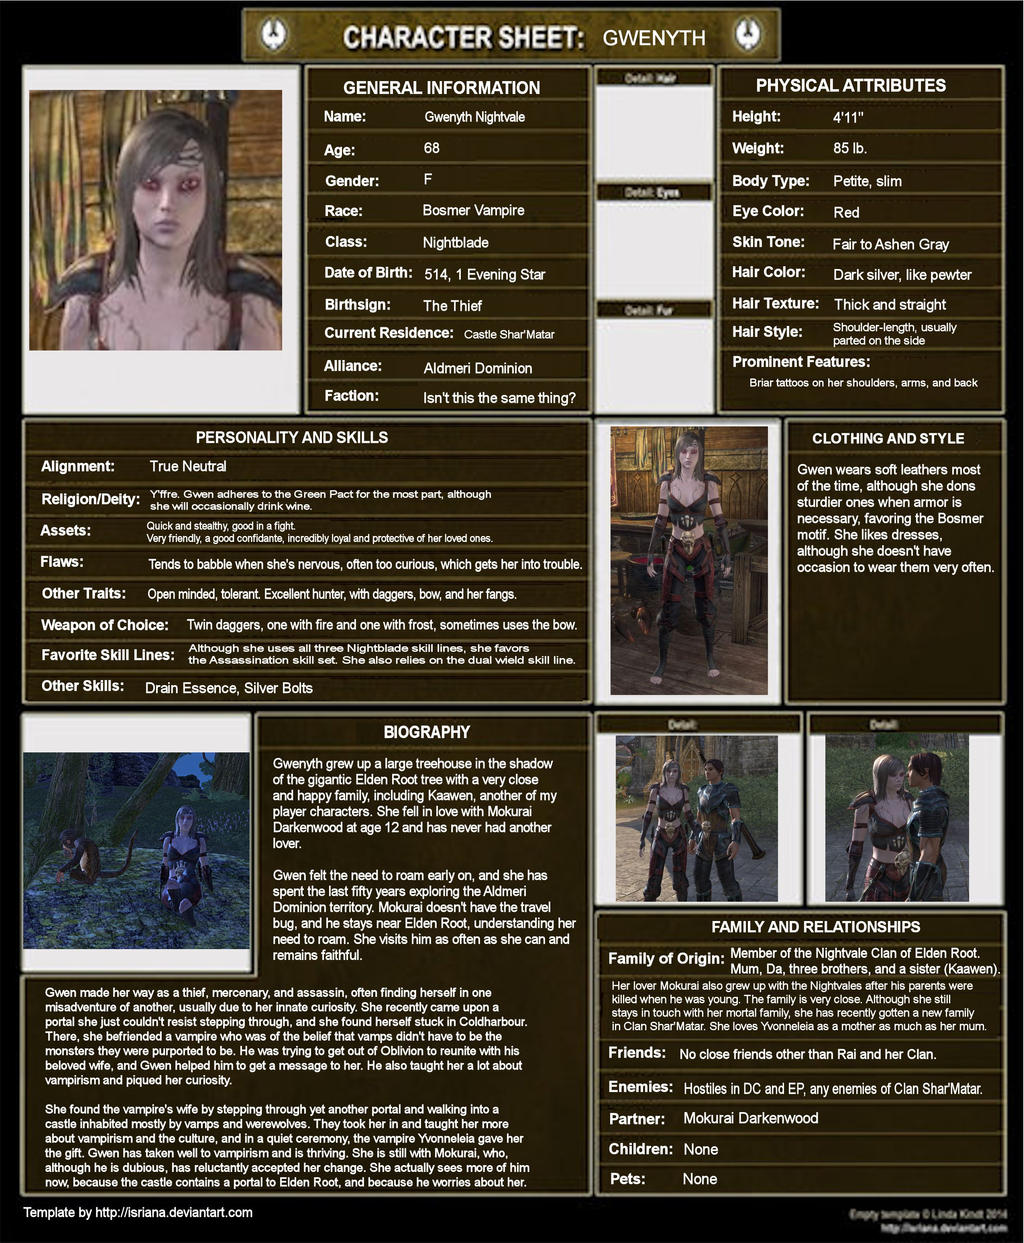 Gwenyth Character Sheet by Whisper292